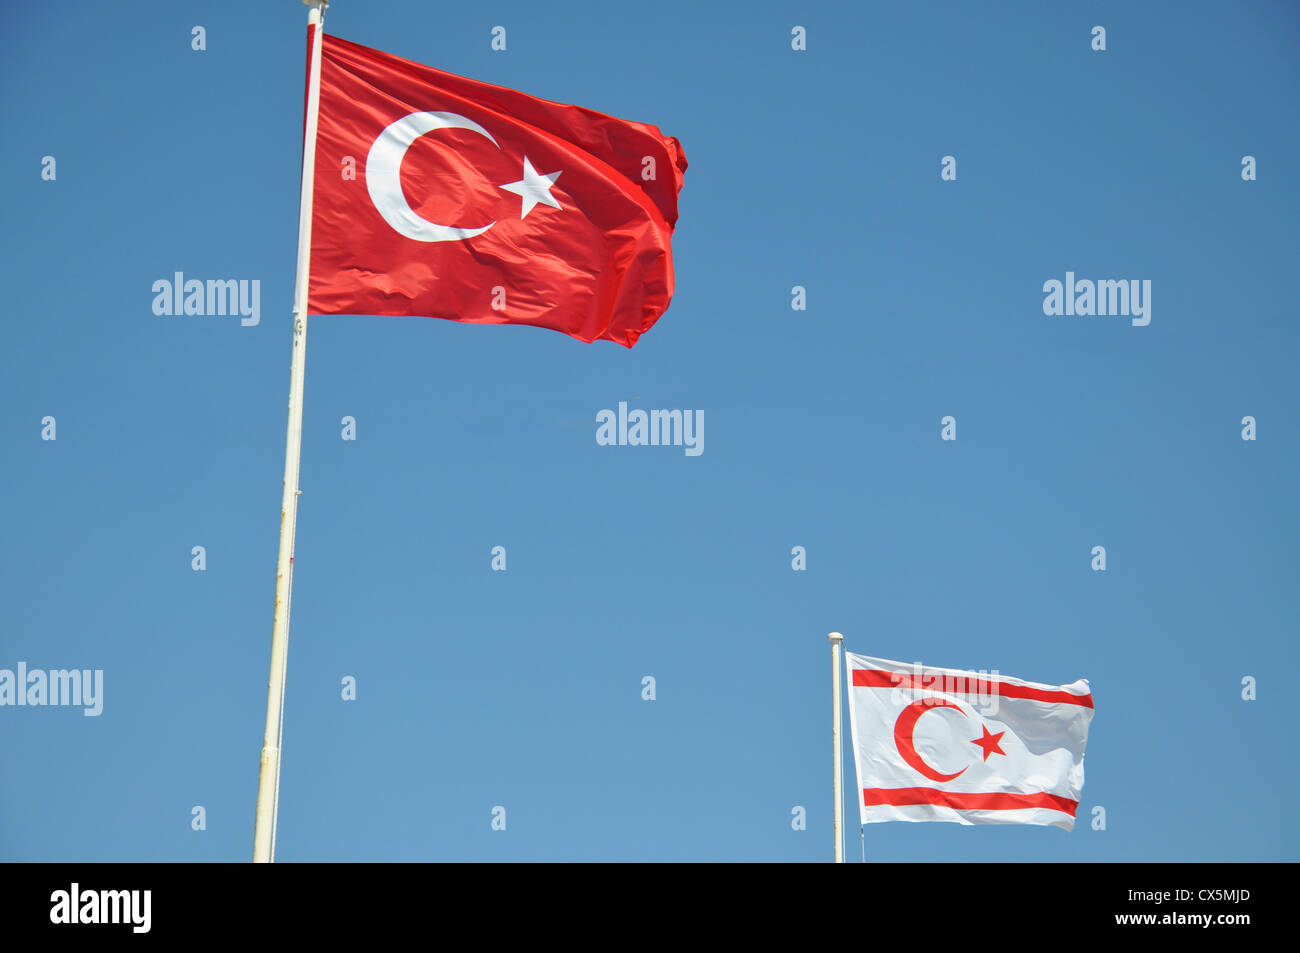 Turkish and Turkish Republic of Northern Cyprus Flag flying against a blue sky - Stock Image